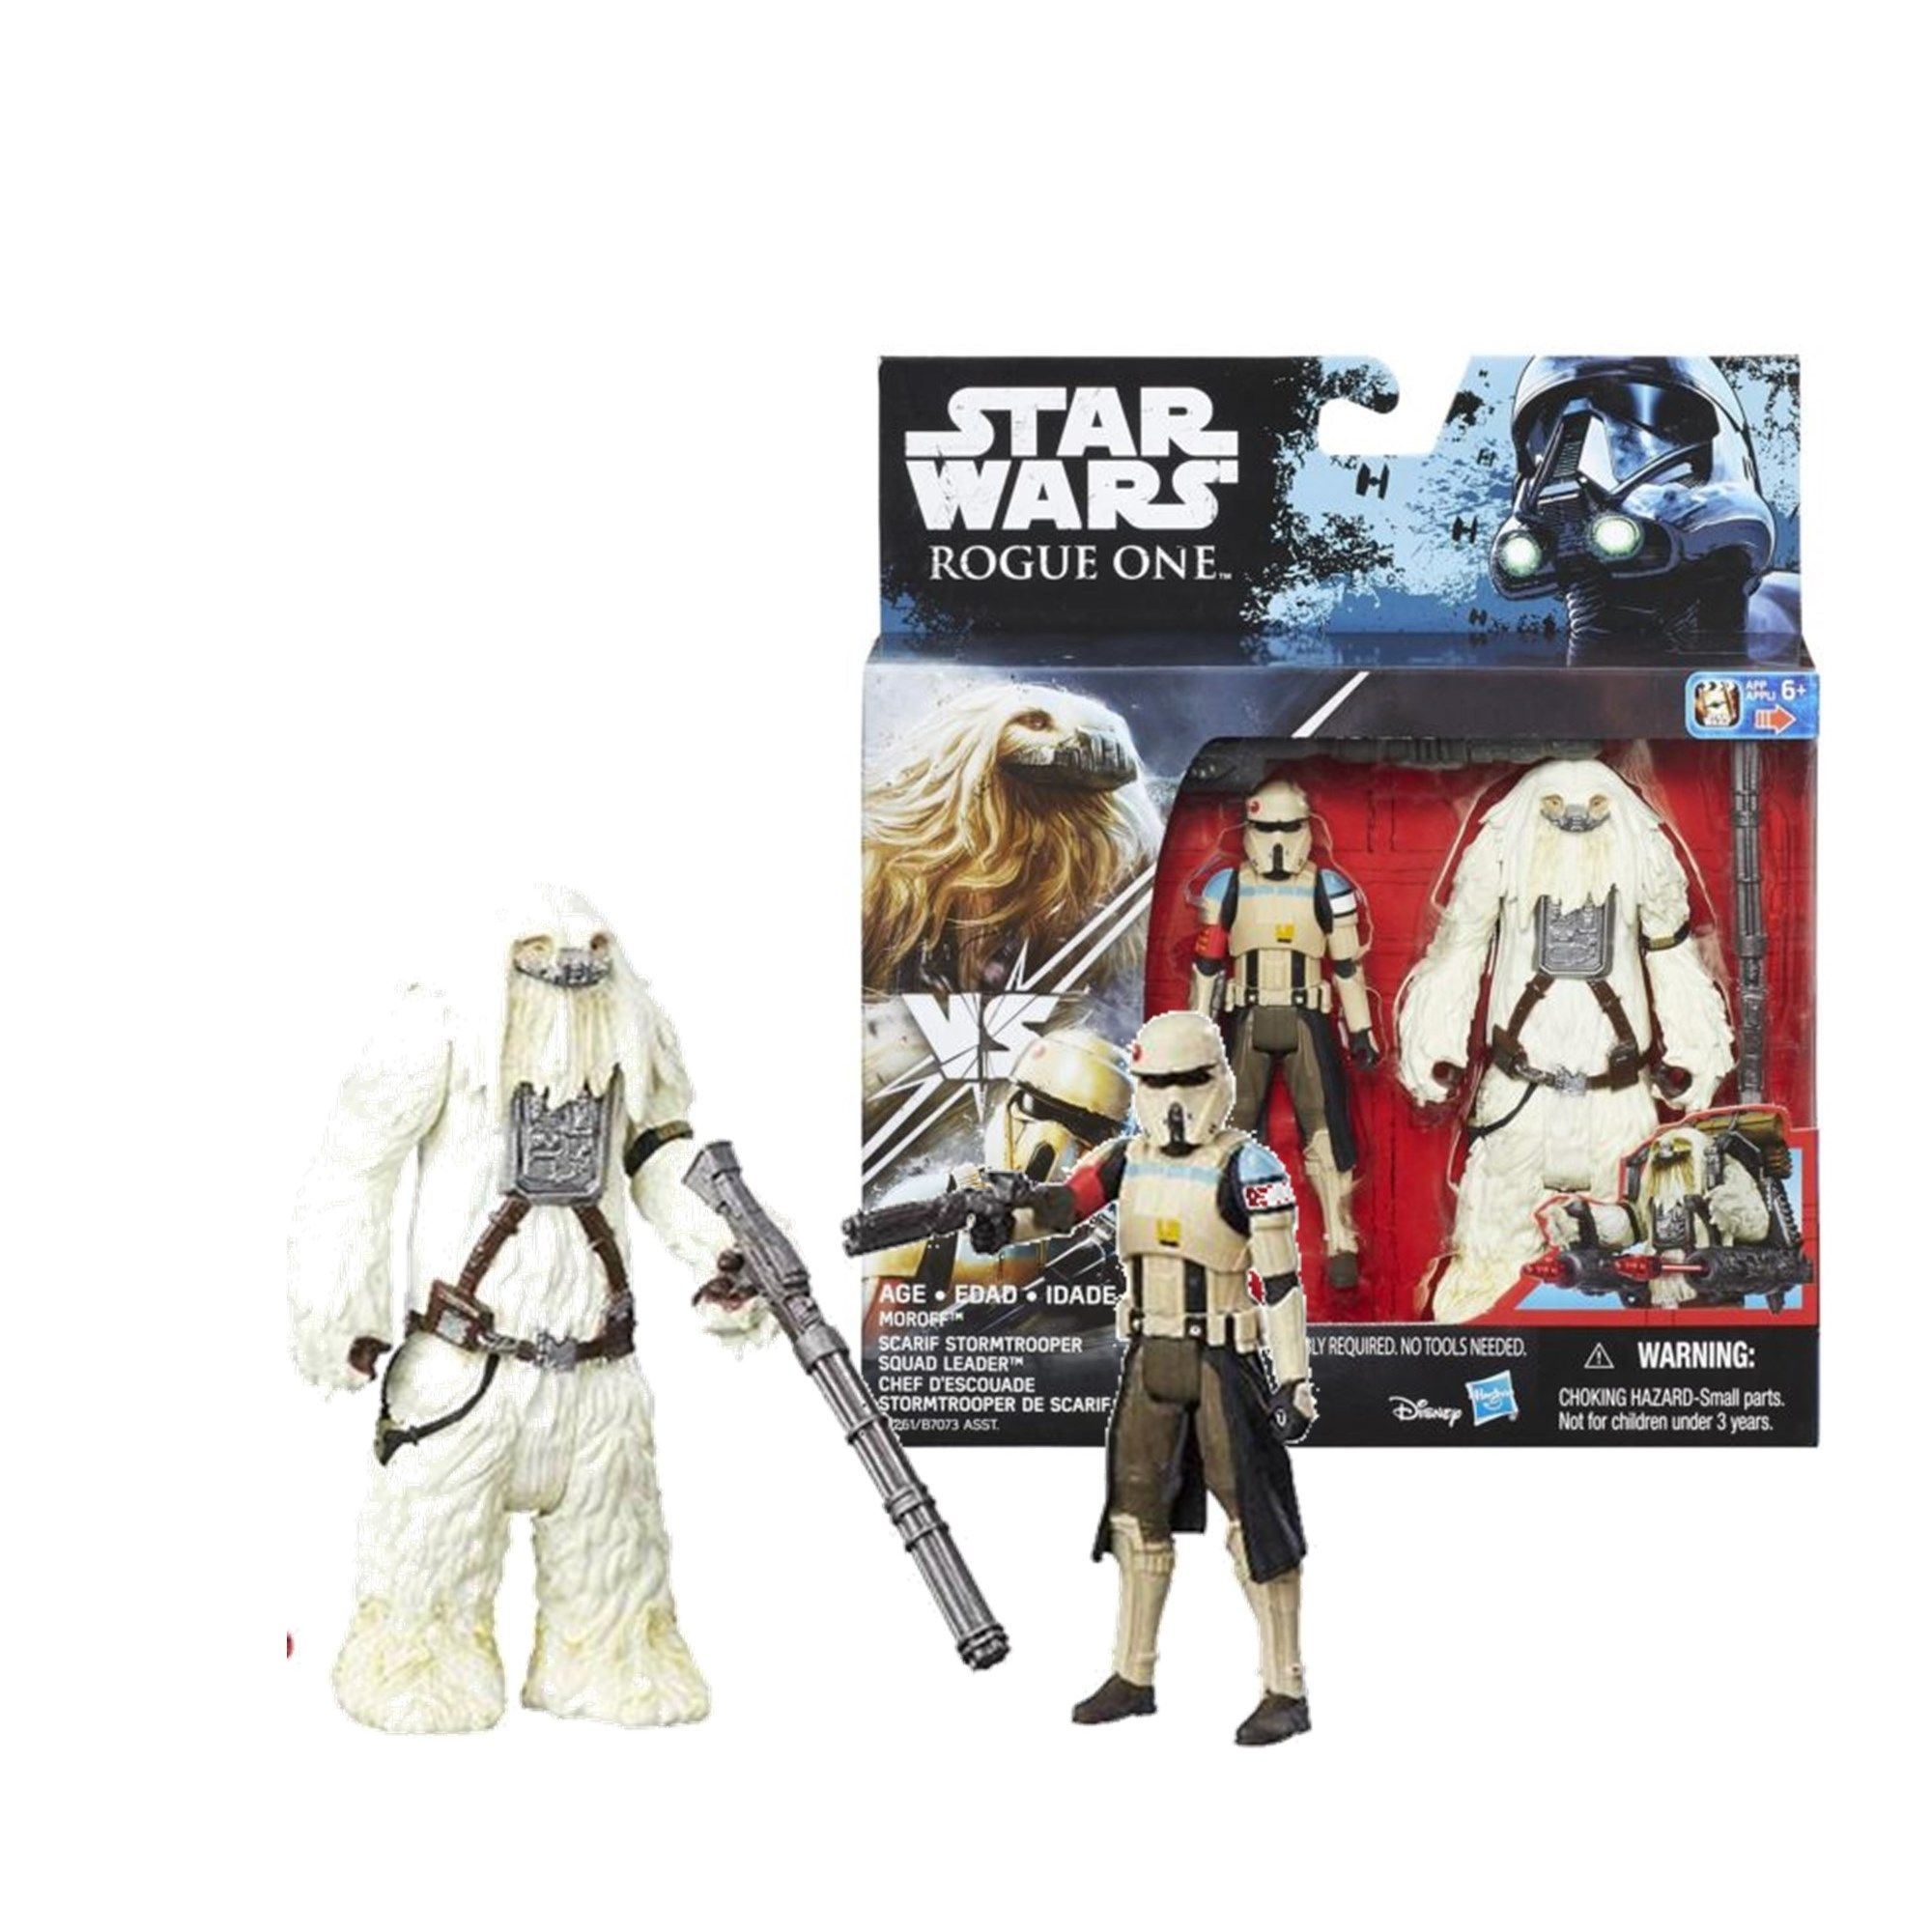 Star Wars Rogue One Moroff Scarif Stormtrooper Squad Leader Action Figure